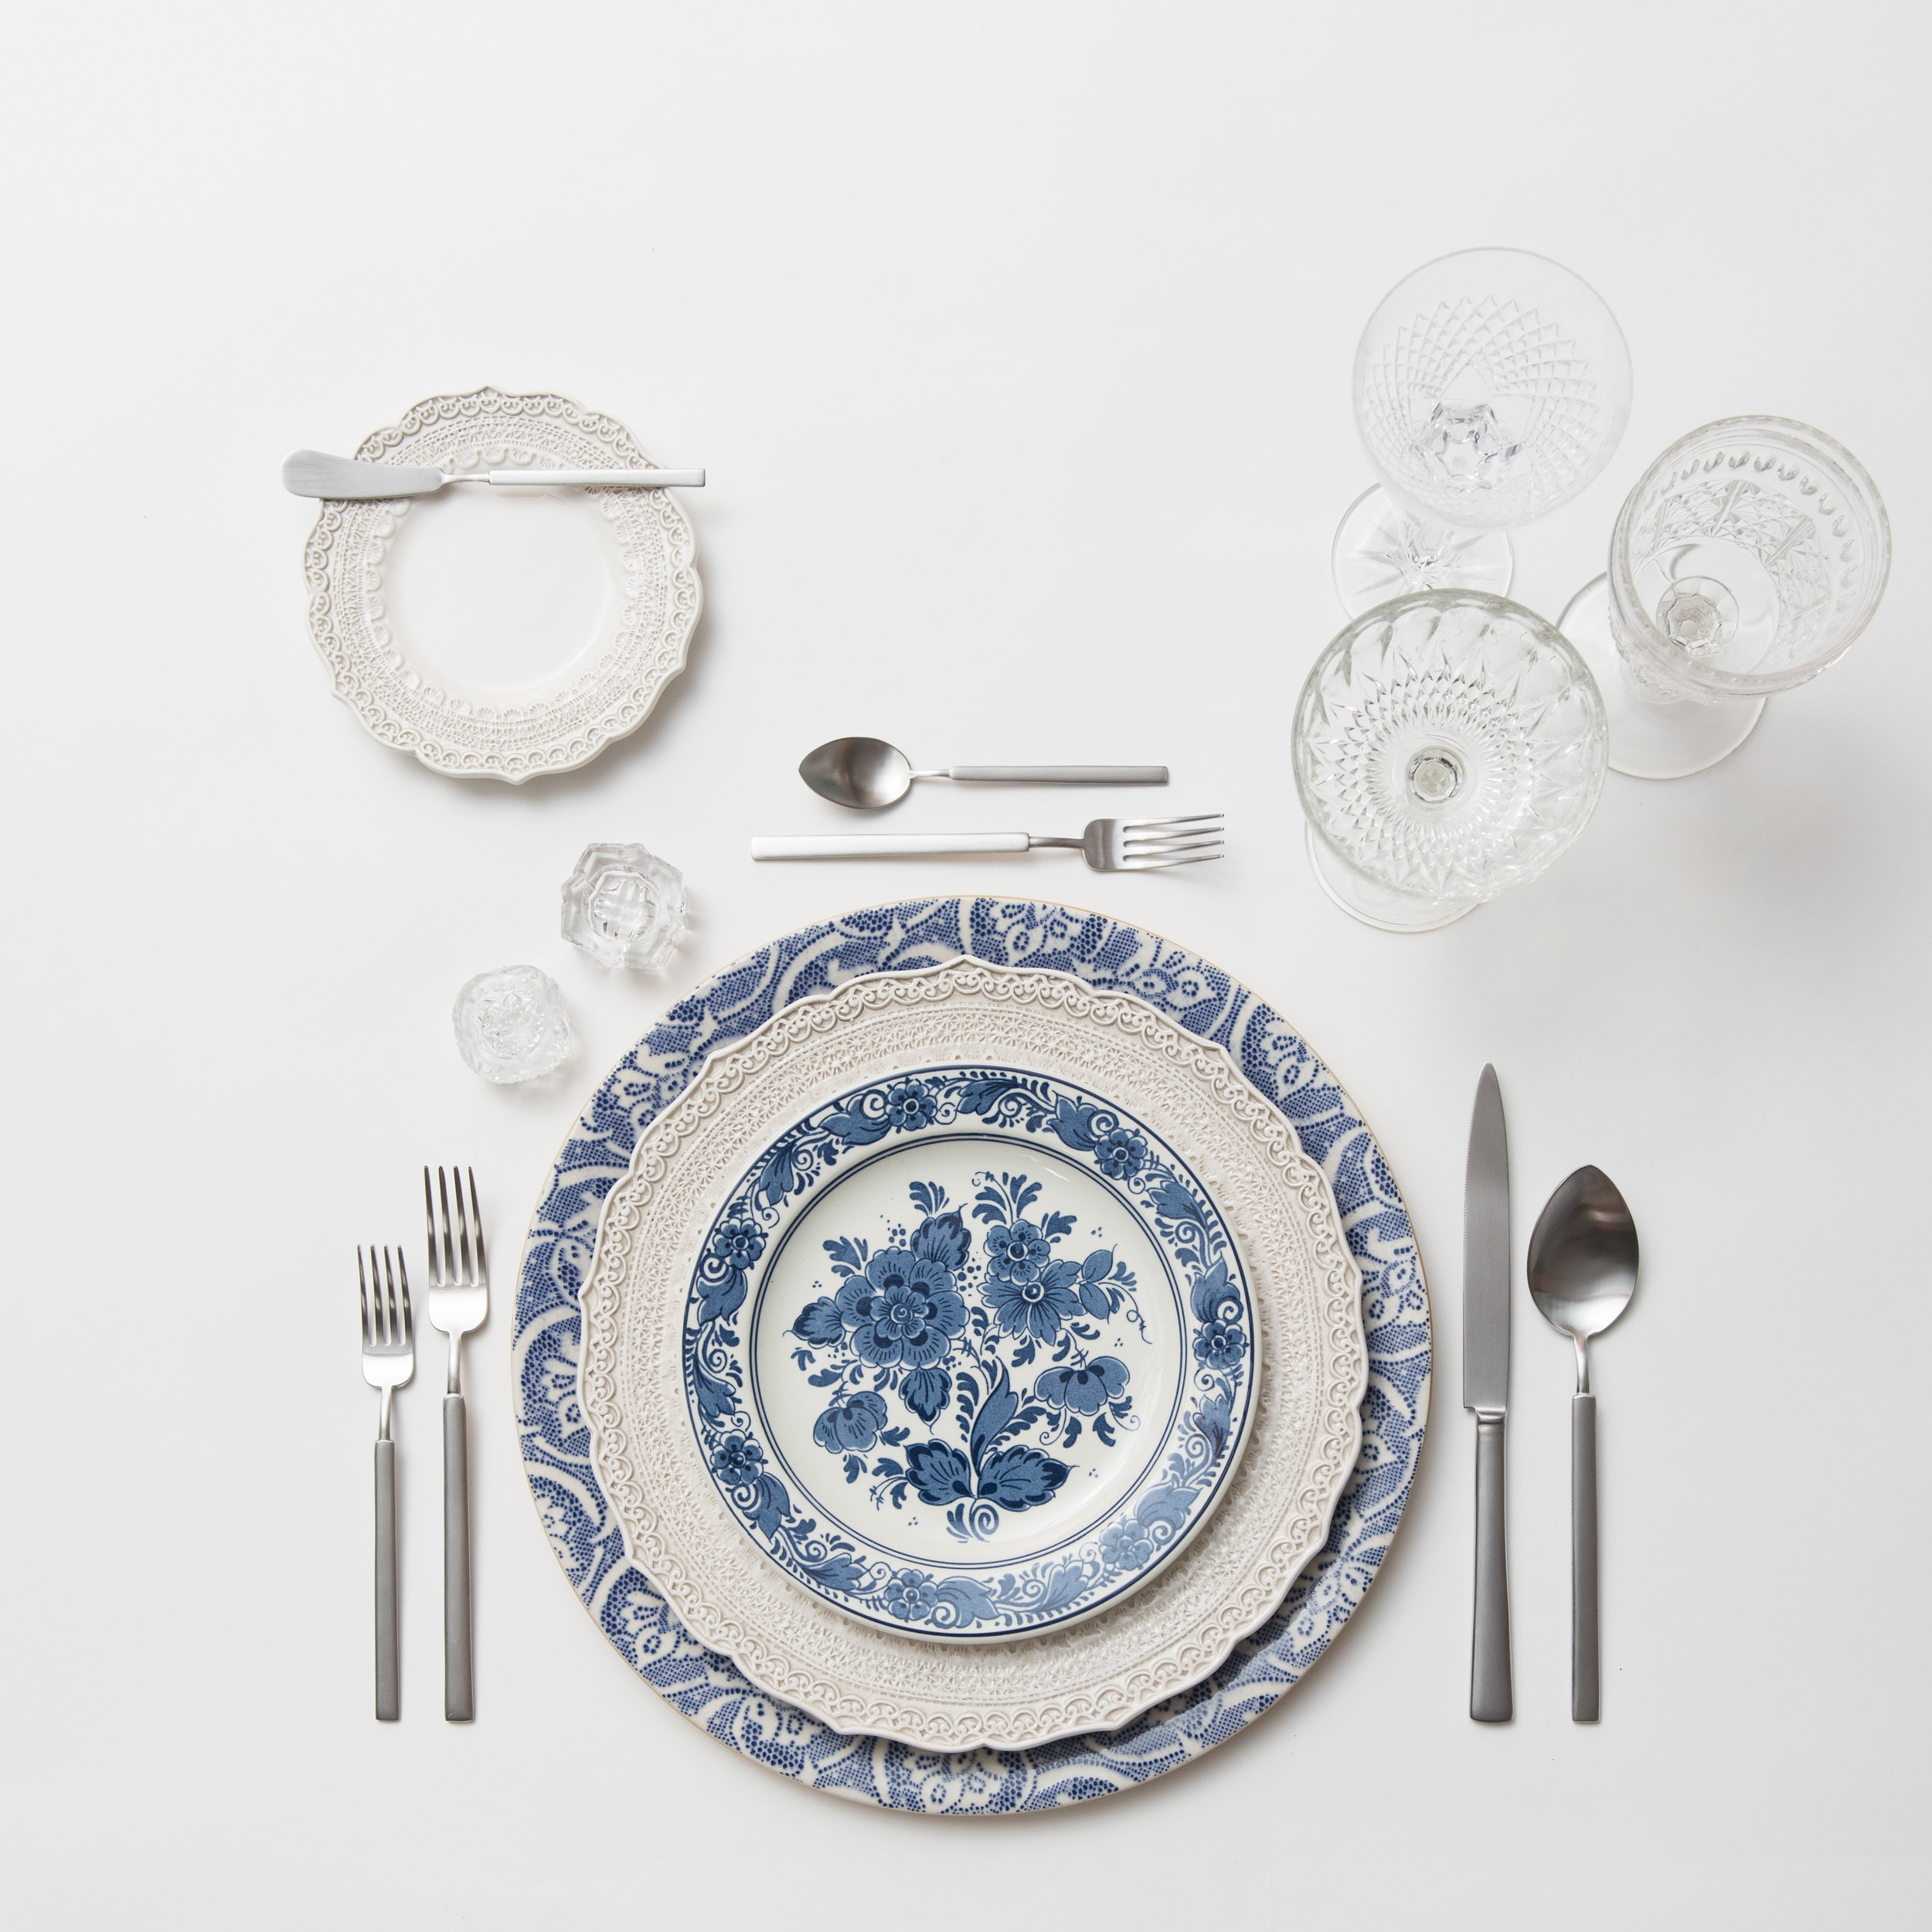 RENT: Blue Fleur de Lis Chargers + Lace Dinnerware in White + Blue Garden Collection Vintage China + Axel Flatware in Matte Silver + Vintage Cut Crystal Goblets + Early American Pressed Glass Goblets + Vintage Champagne Coupes + Antique Crystal Salt Cellars